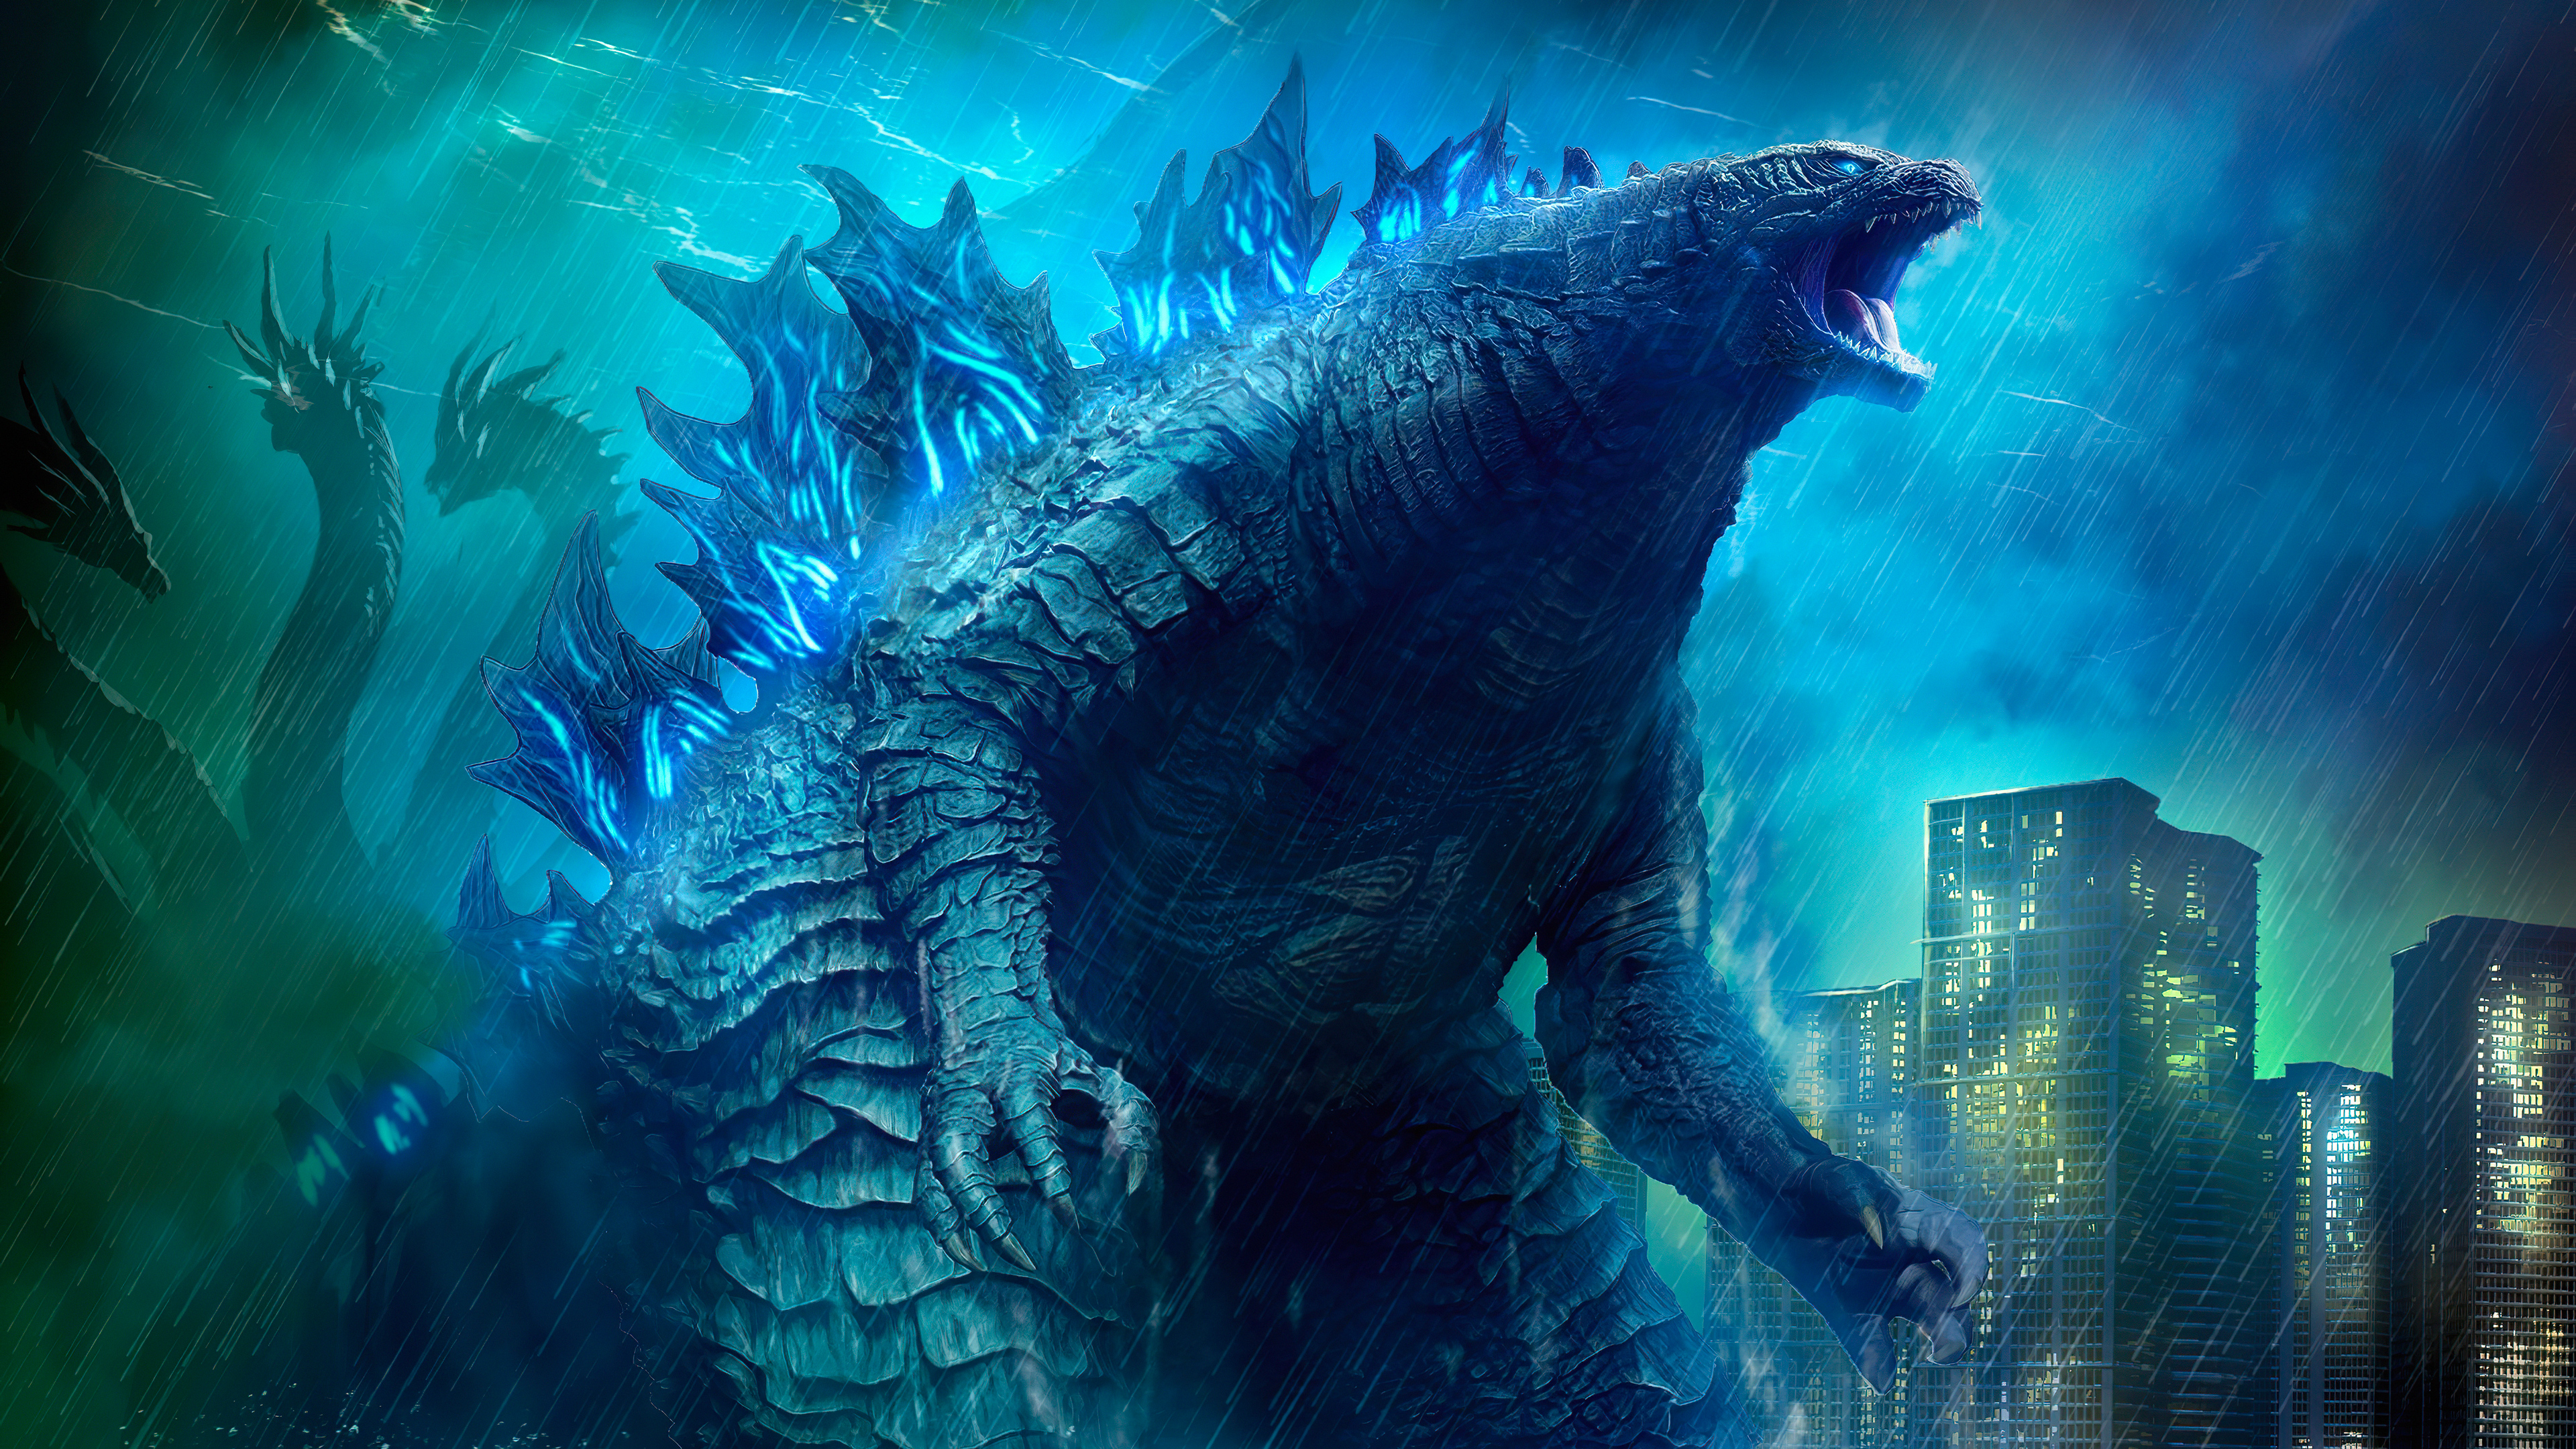 godzilla king of the monsters movie art 1579648579 - Godzilla King Of The Monsters Movie Art - Godzilla King Of The Monsters Movie Art wallpapers, Godzilla King Of The Monsters Movie 4k wallpapers